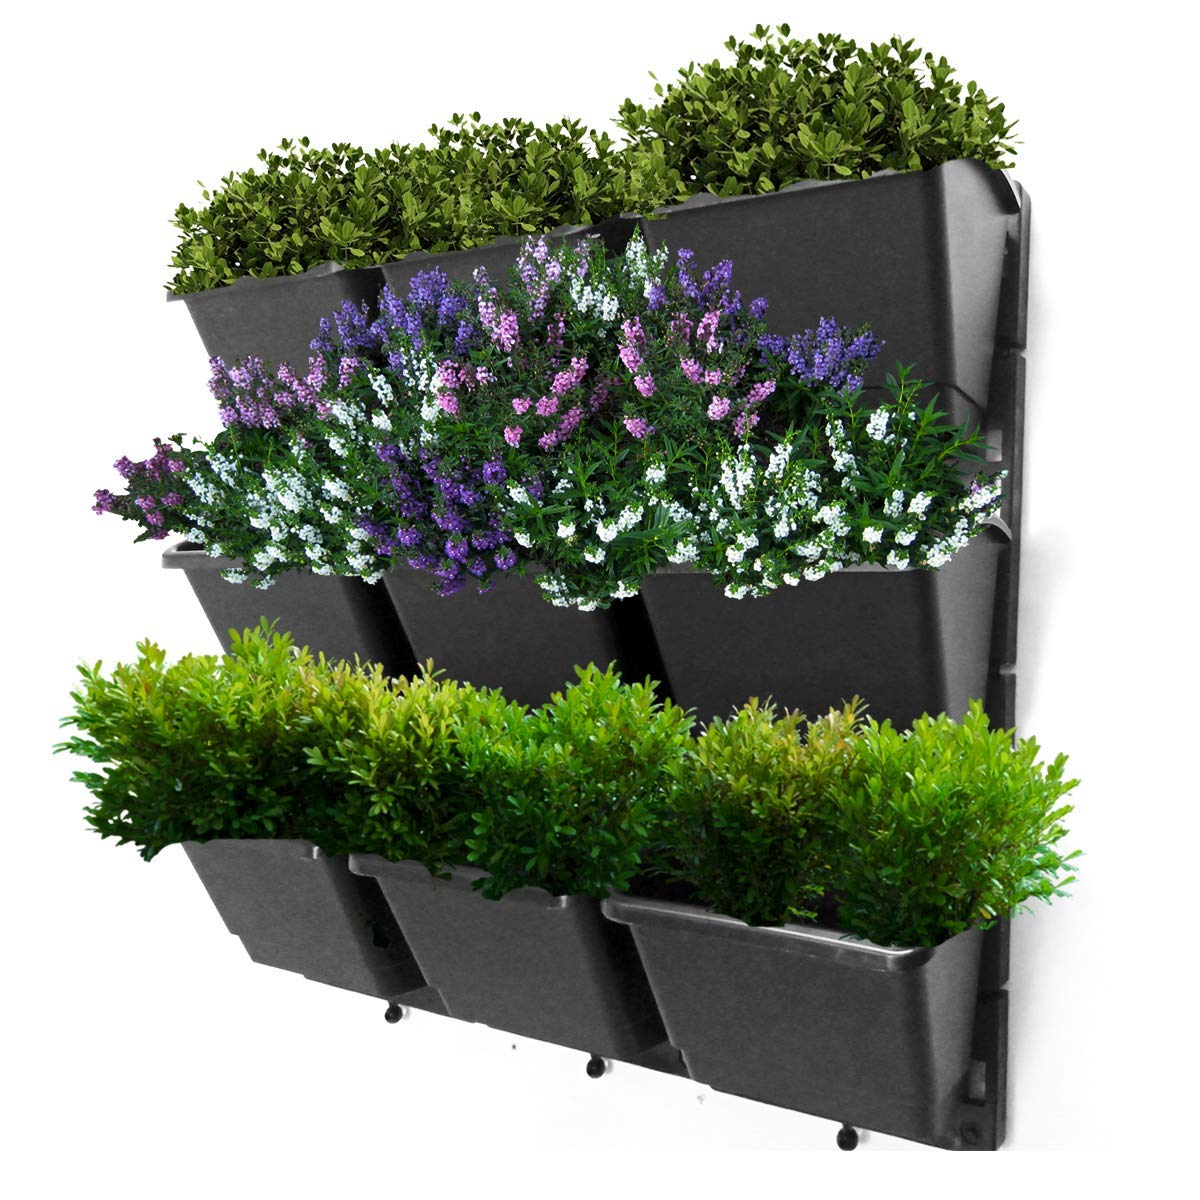 Vertical Garden Wall Planter Kit- 19''x19''- 3 Clip & Create Modules-11 Unique Design Layouts-Vertical Gardening Kit Wall Mount Fits Any Space- Grow Flowers,Succulents,Vegetables, Herbs - Easy DIY